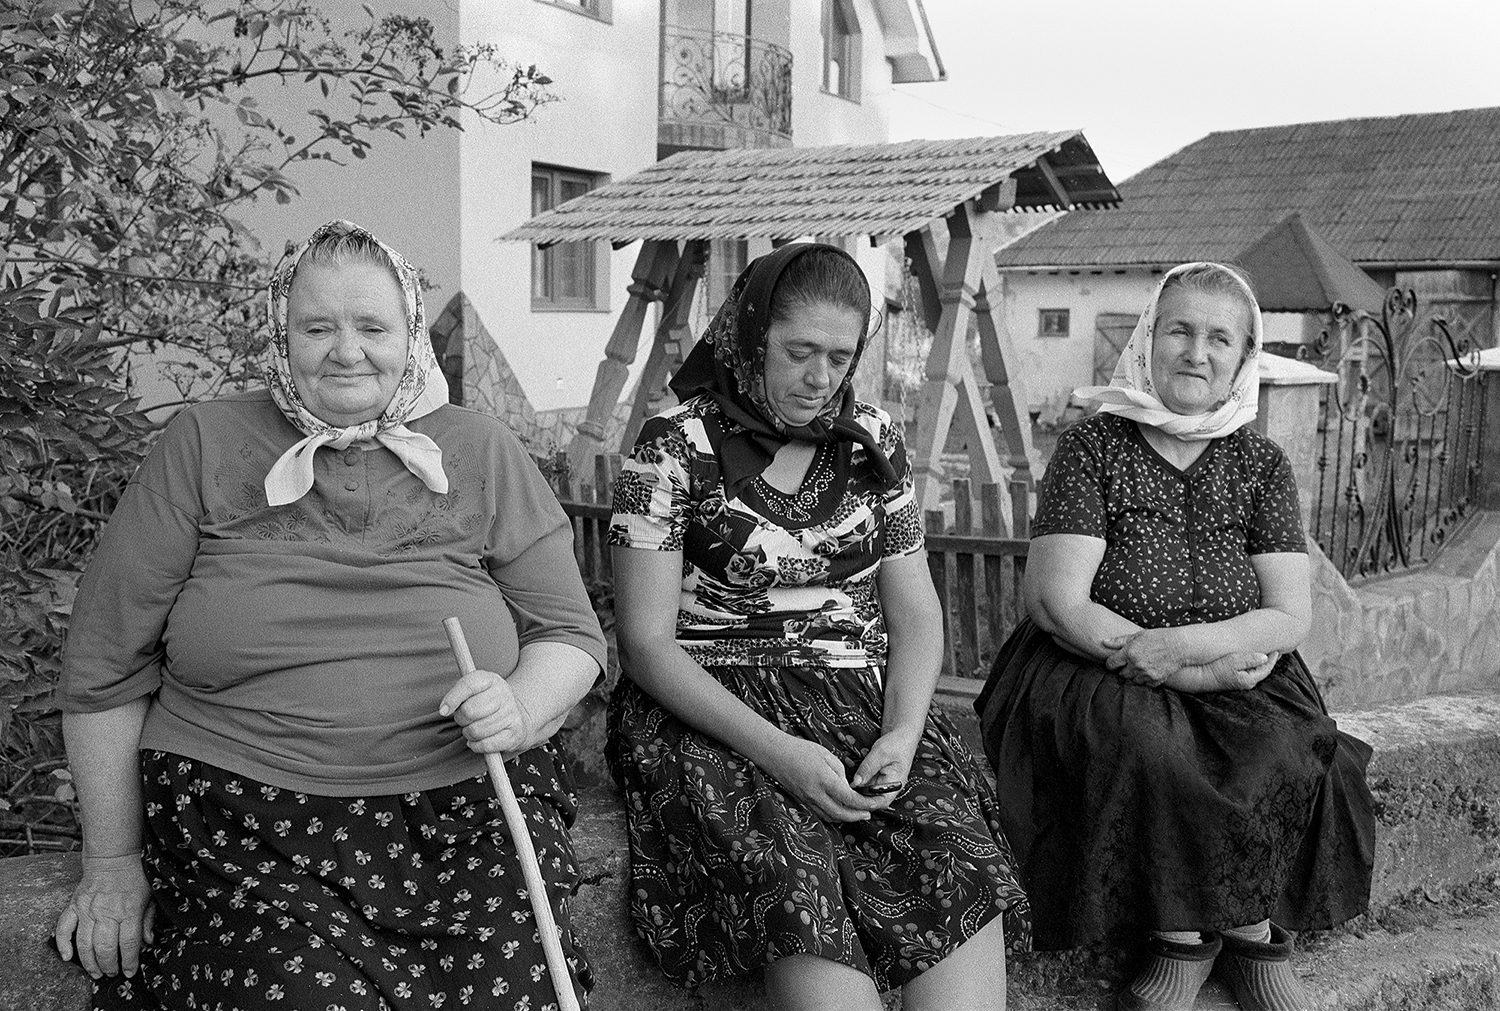 Street photo of three ladys in breb maremures Romania shot on ILFORD black and white film by Keith Moss